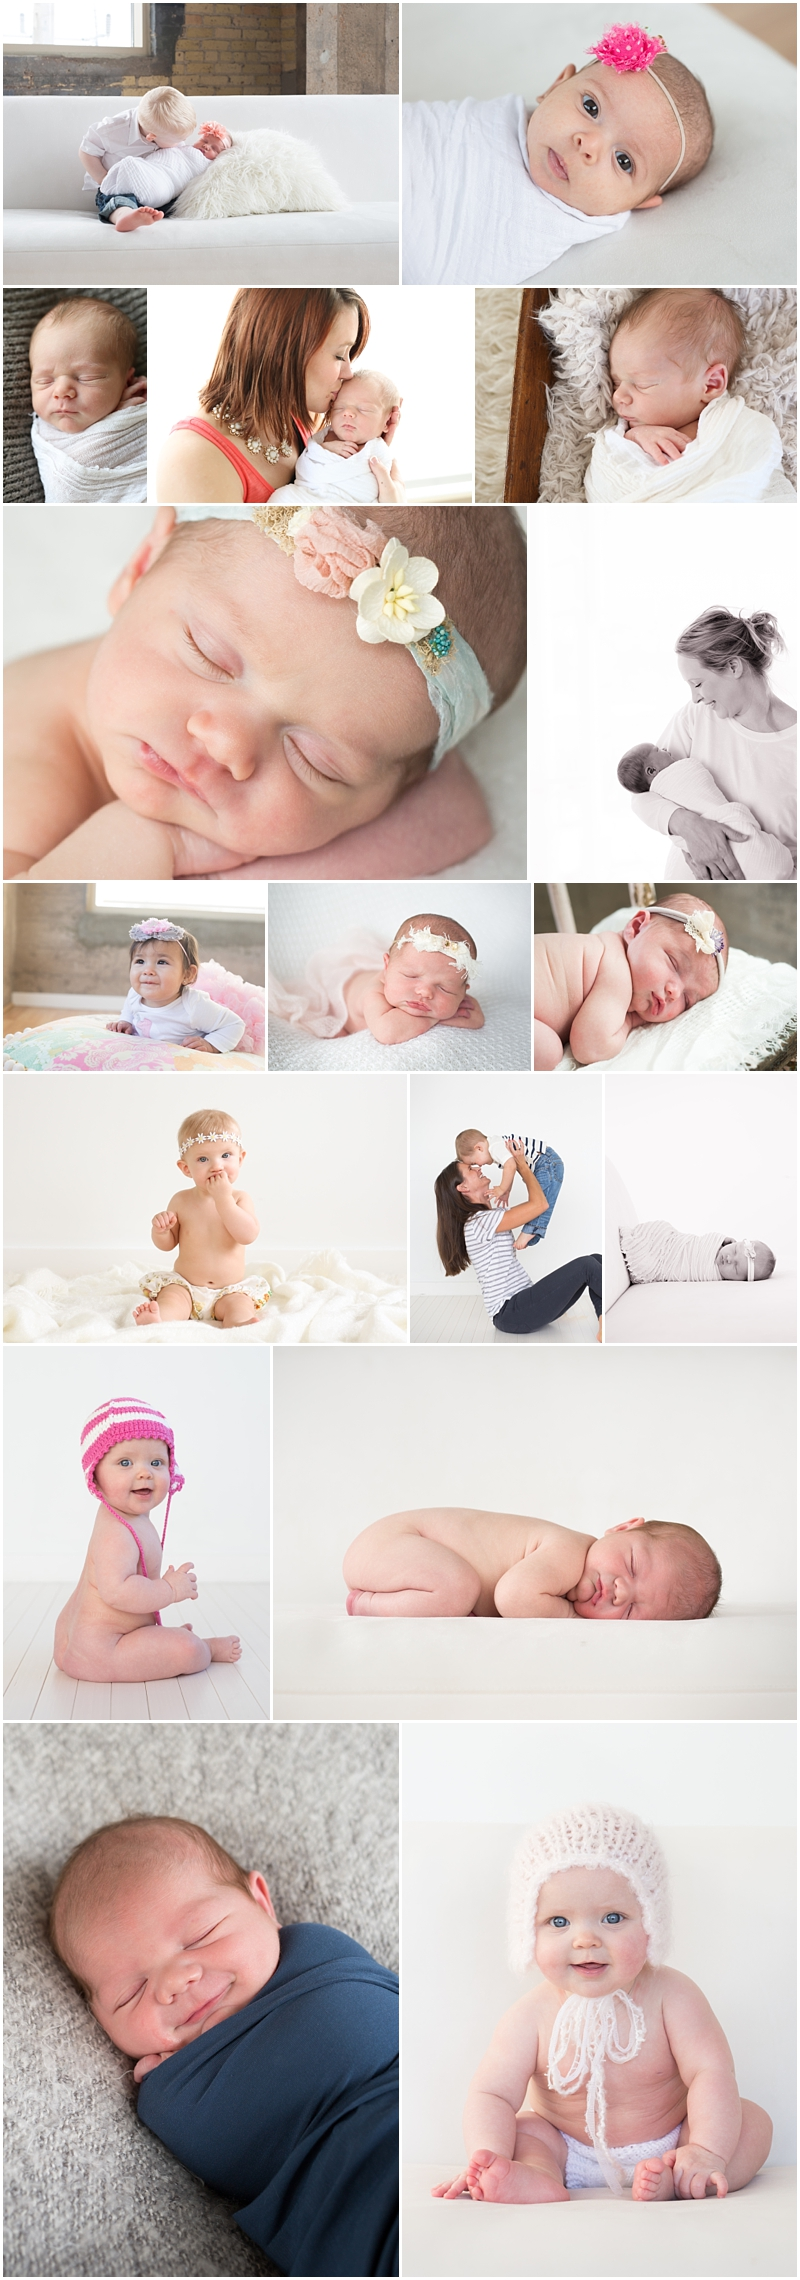 caitlin killoran photography - fargo newborn photographer